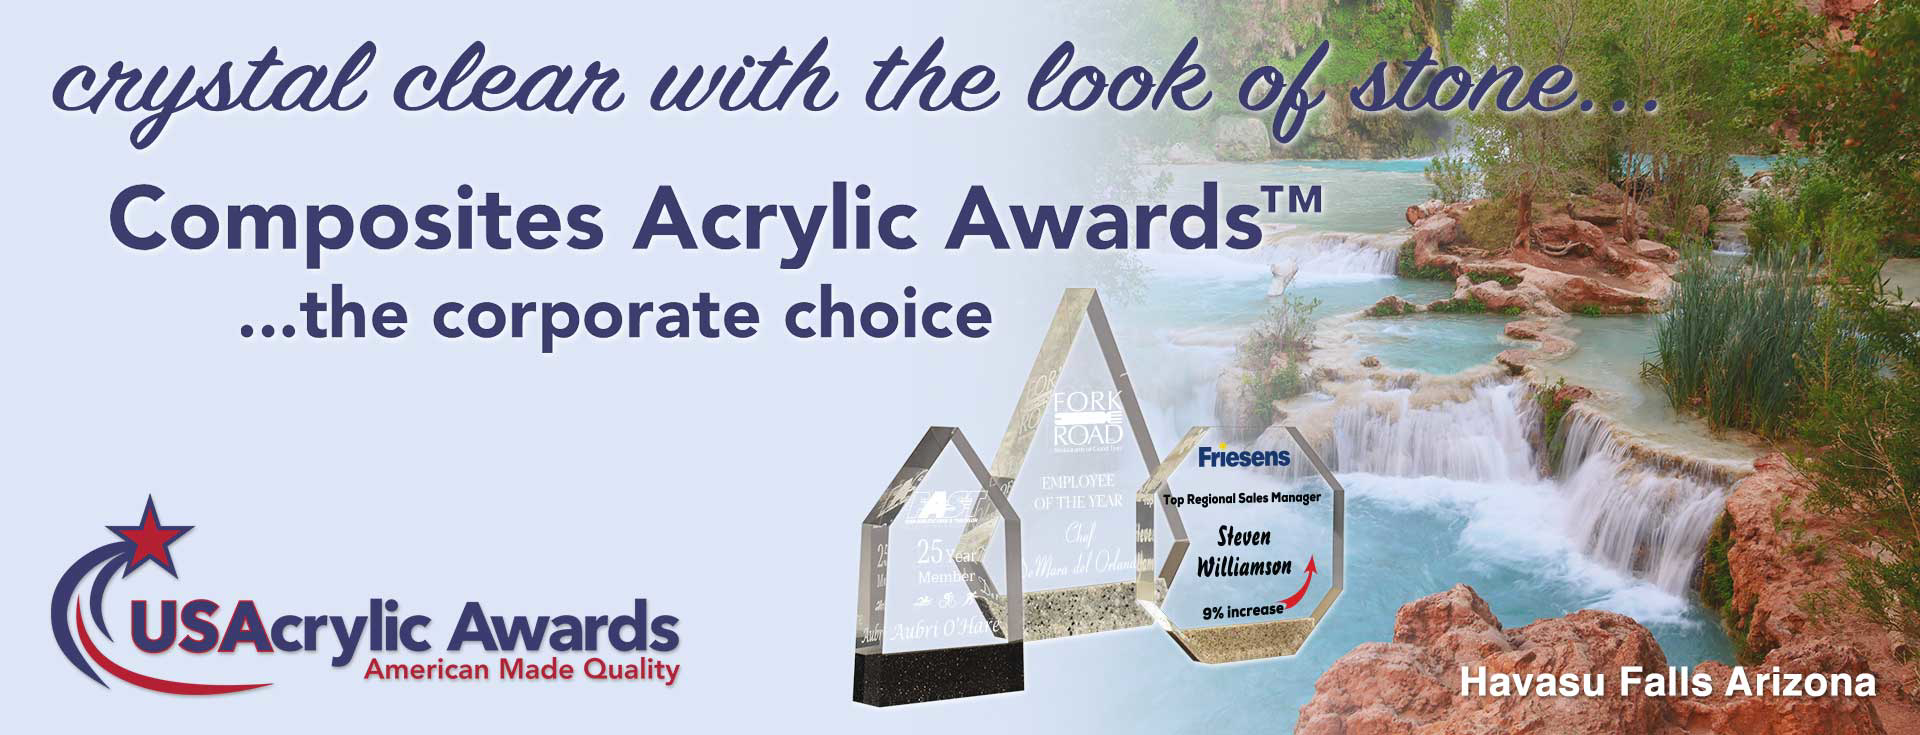 Blue green water flowing over Havasu Falls Arizona with Composites™ Acrylic Awards displayed with words — Crystal clear with the look of stone...